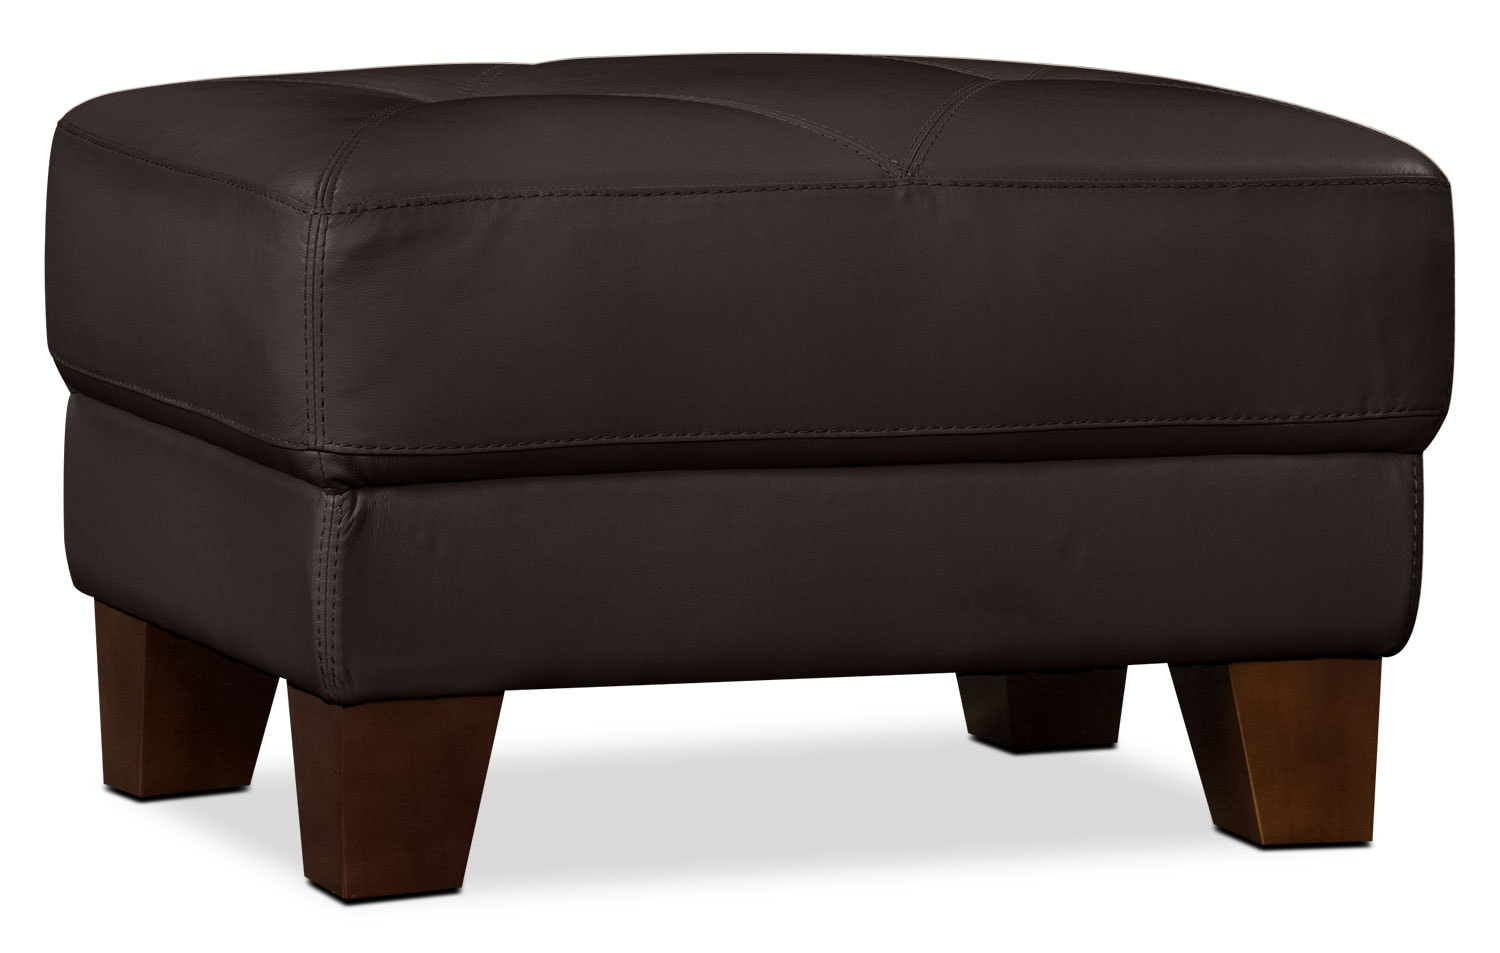 Living Room Furniture - Vita 100% Genuine Leather Ottoman – Chocolate